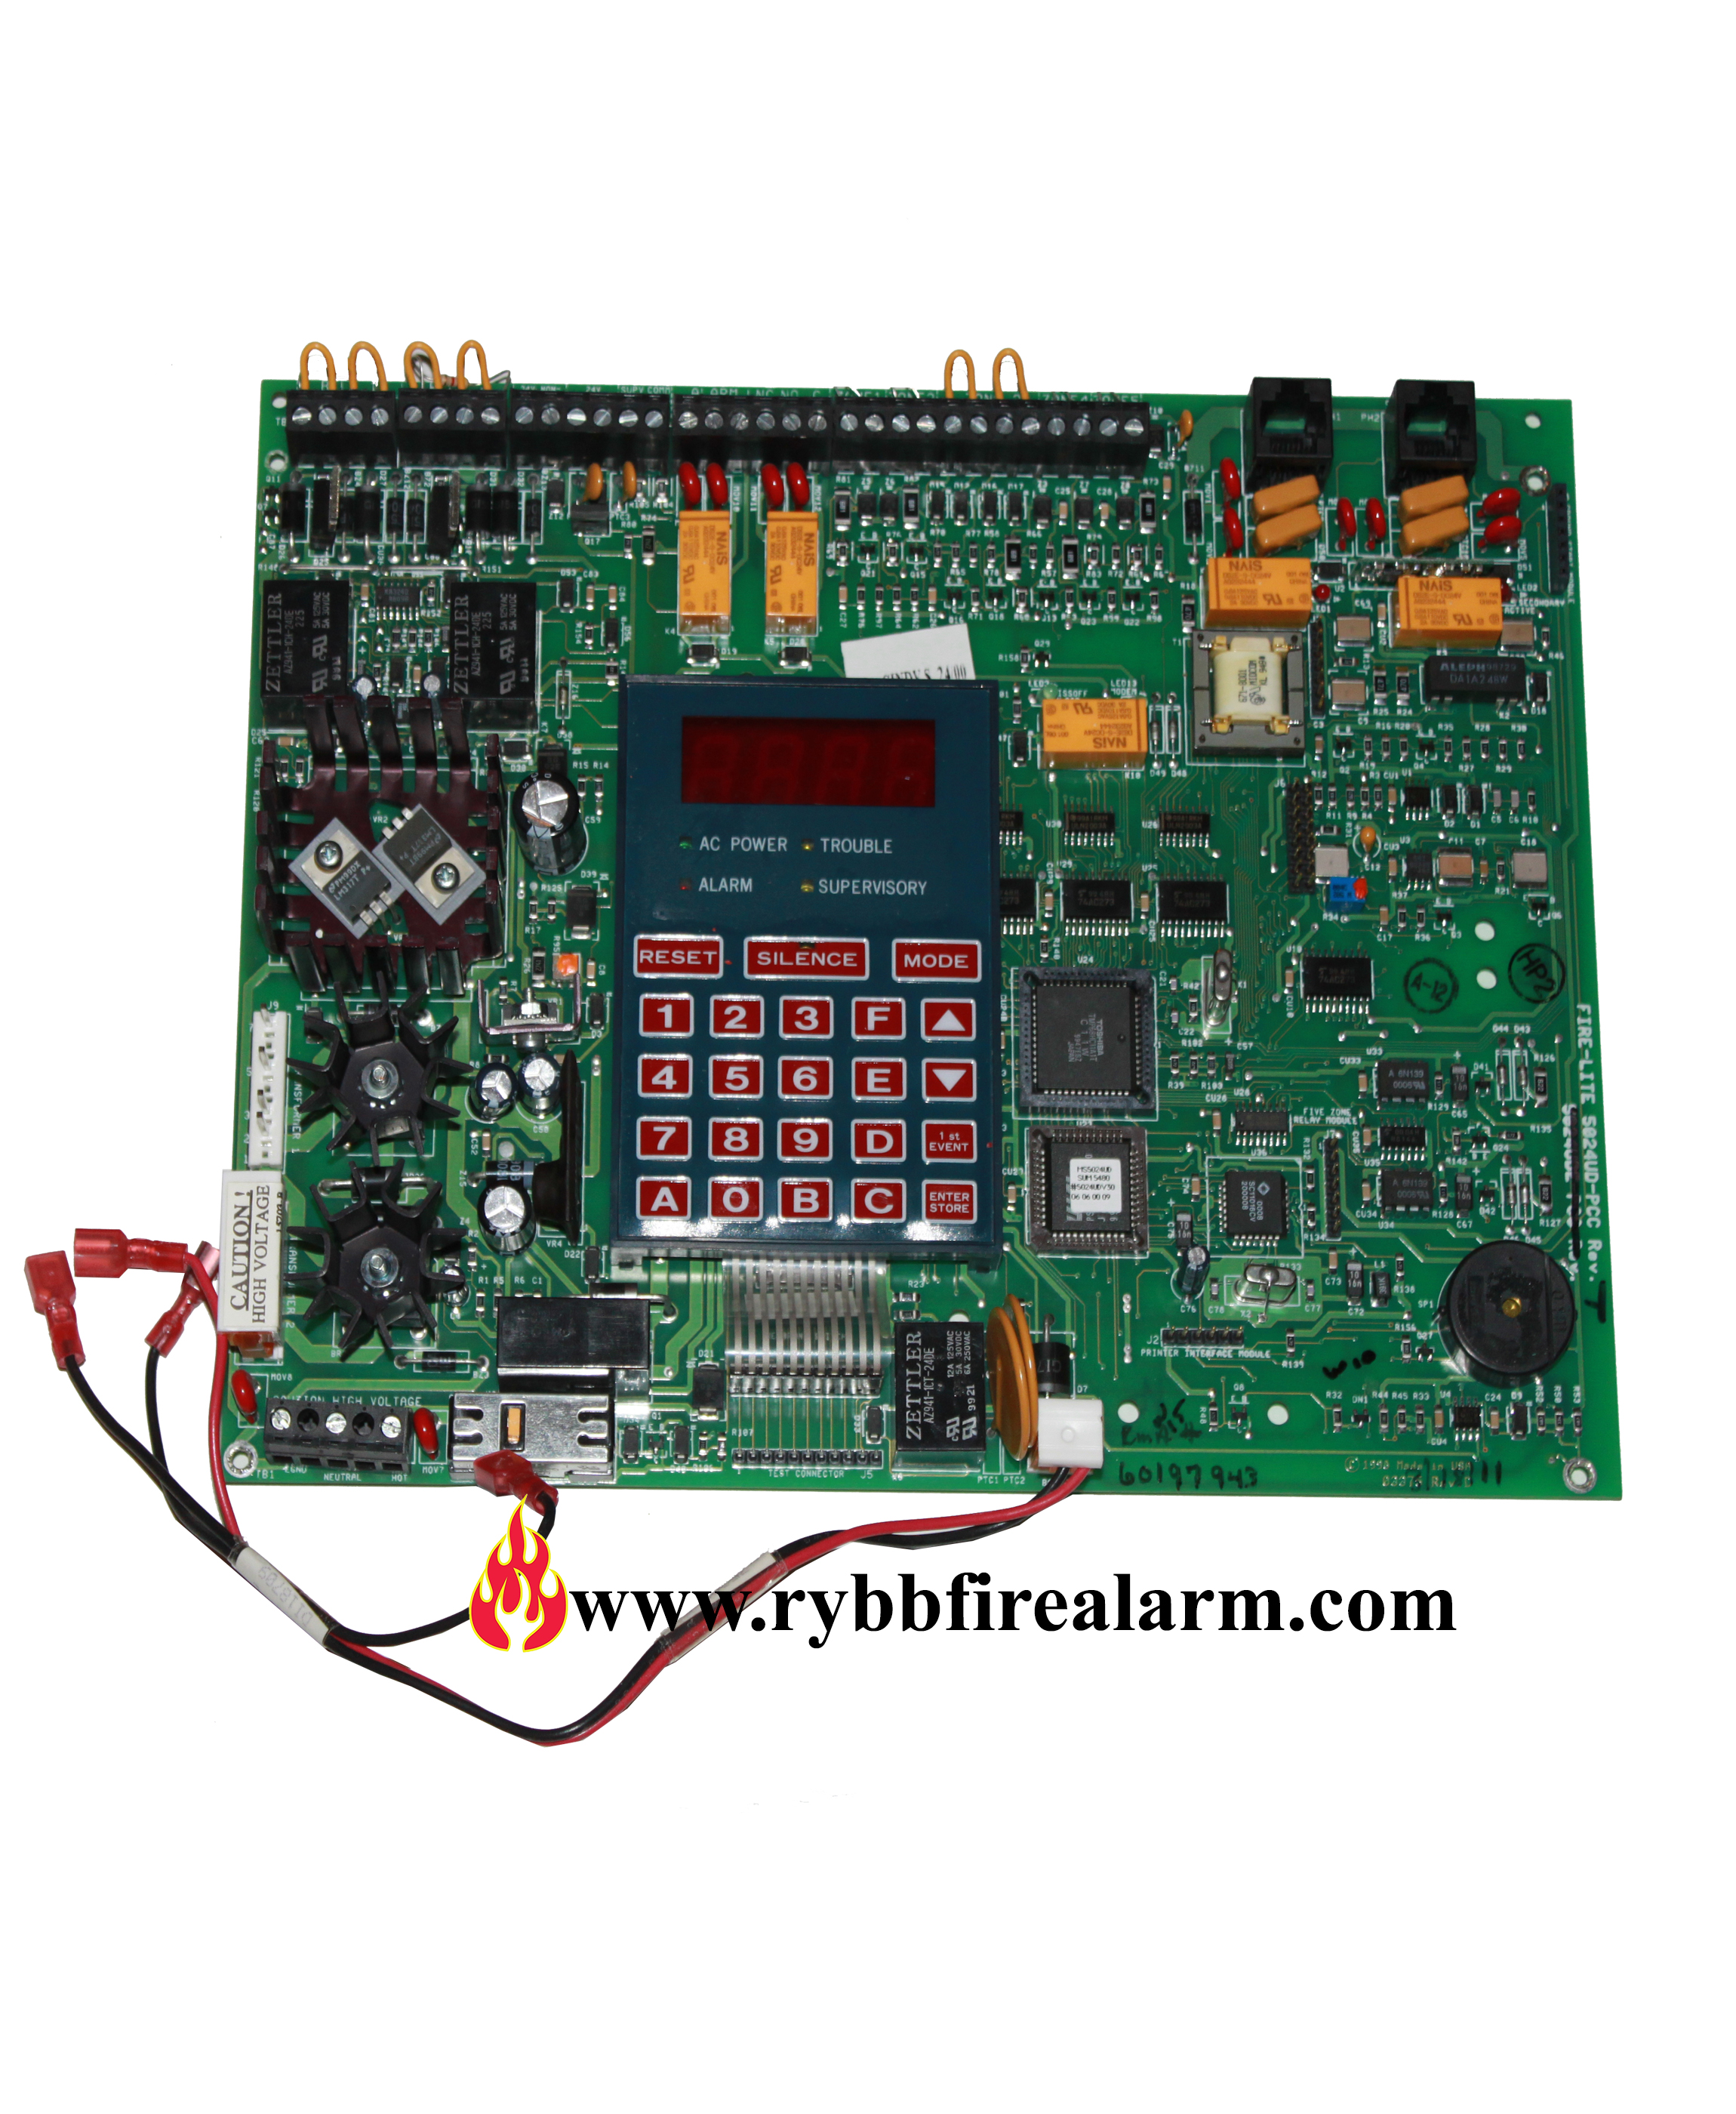 fire lite ms 5024ud fire alarm control panel replacement. Black Bedroom Furniture Sets. Home Design Ideas